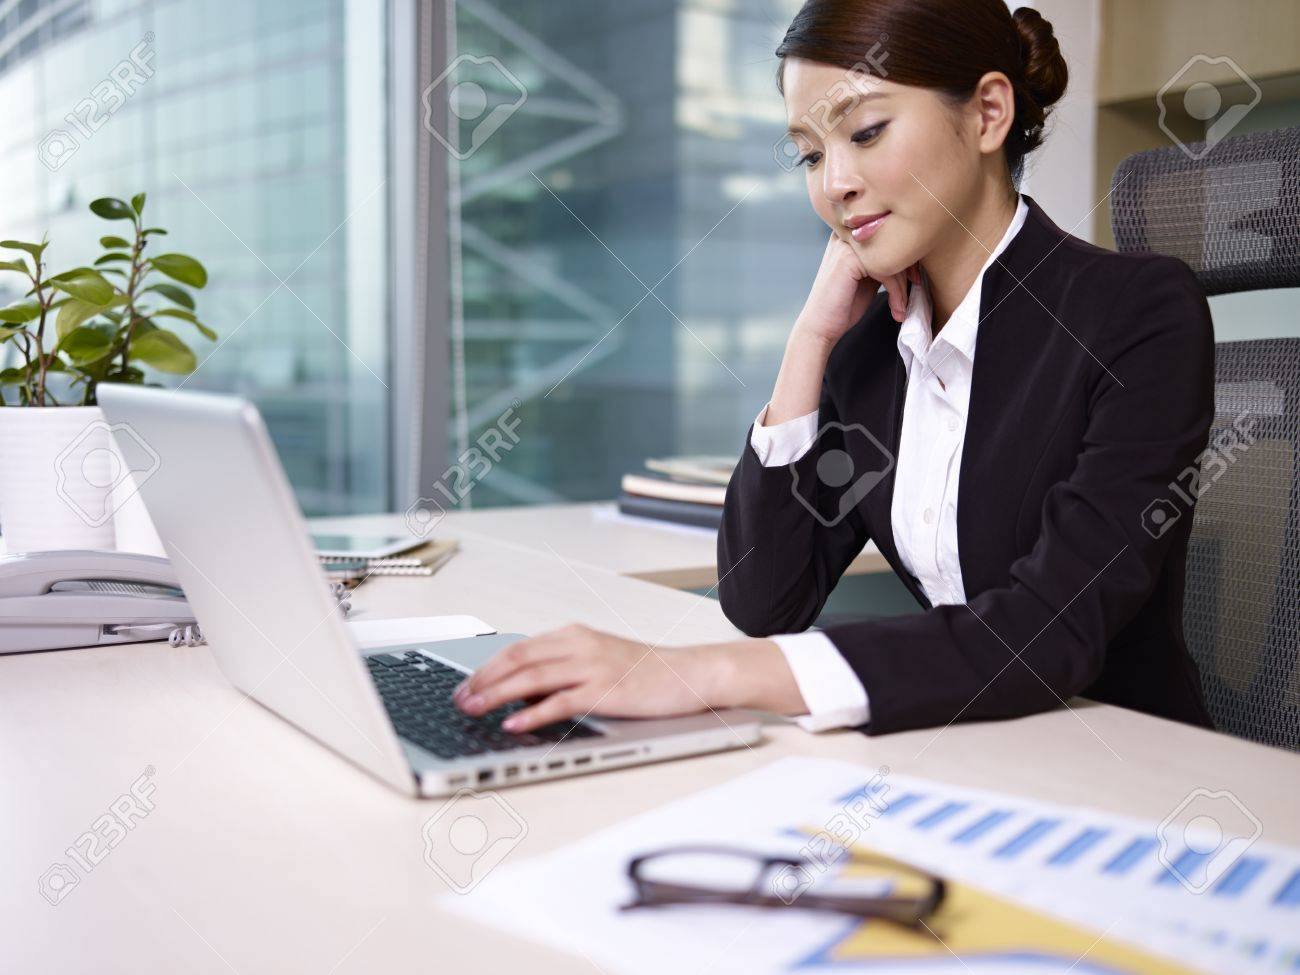 asian businesswoman looking at laptop computer in office Stock Photo - 18117917